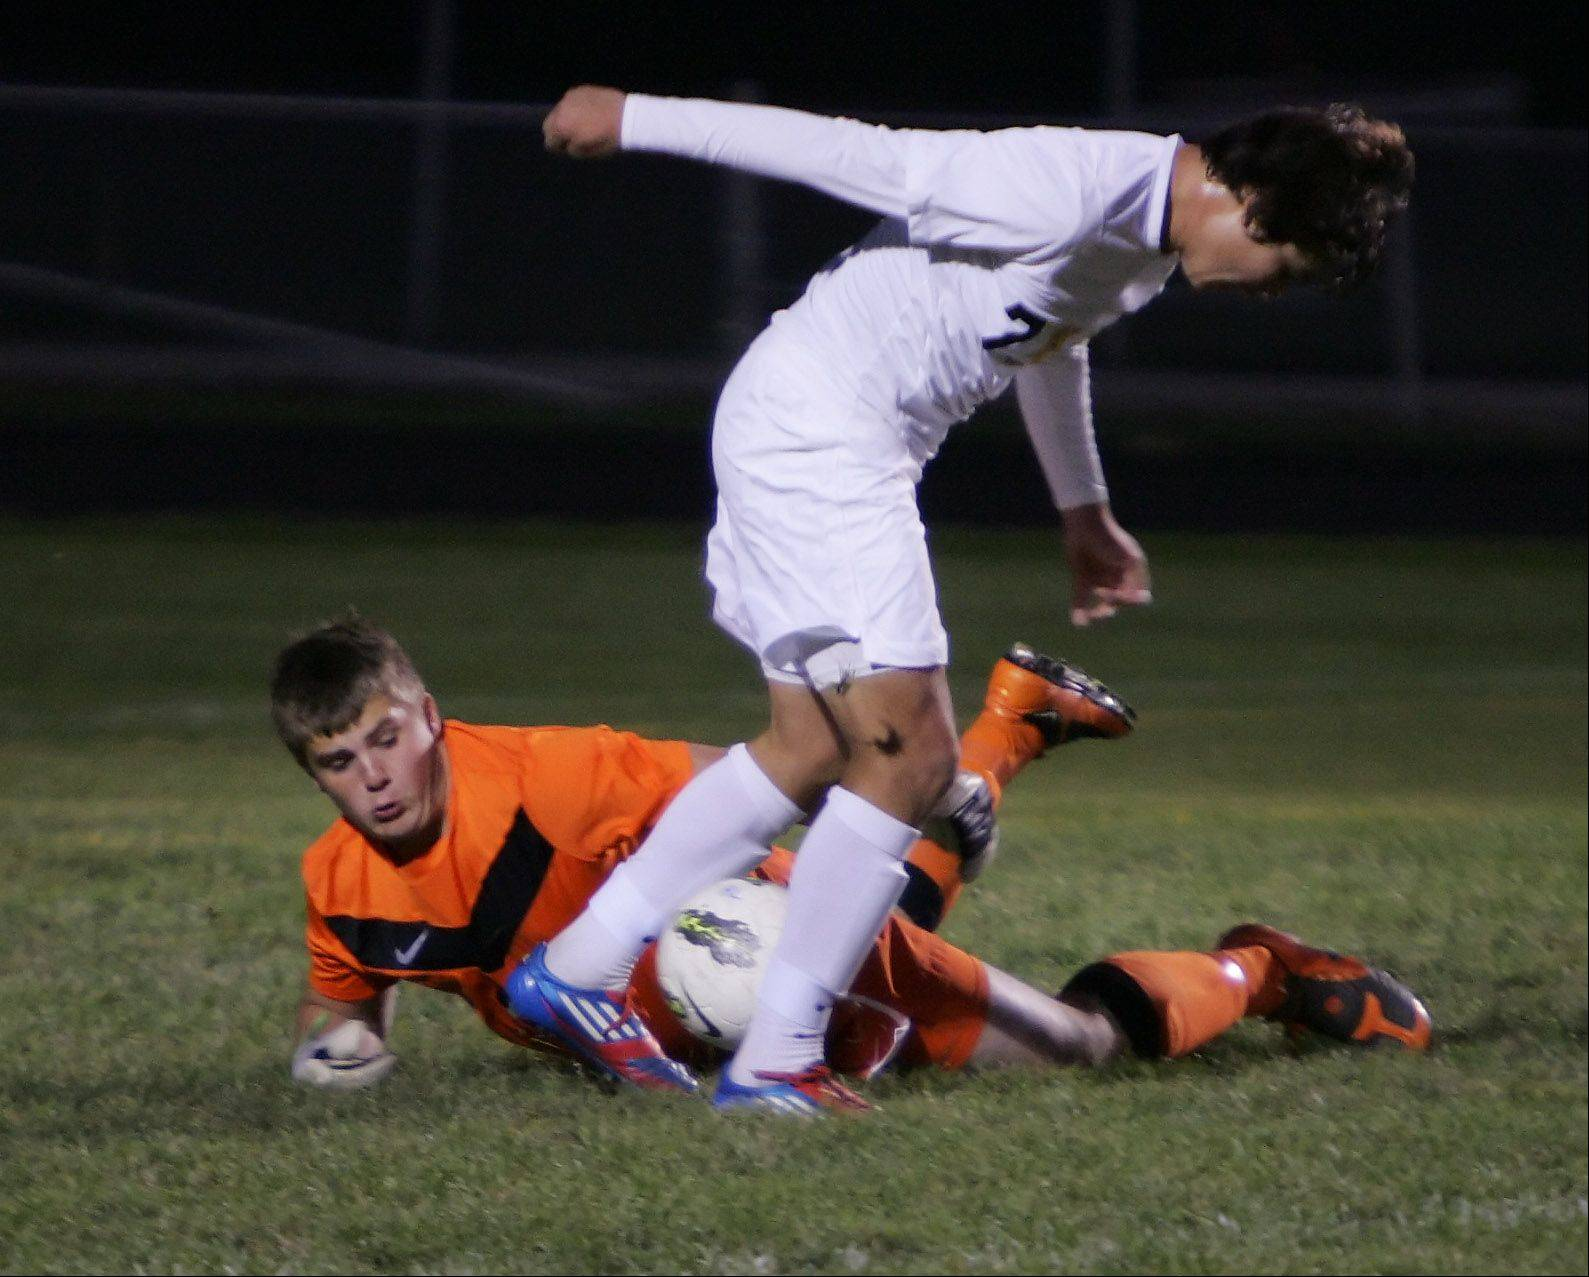 Antioch goalie Tommy Ttitschler stops the advancement of Round Lake forward Mauricio Salgado in the first half Thursday at Round Lake.